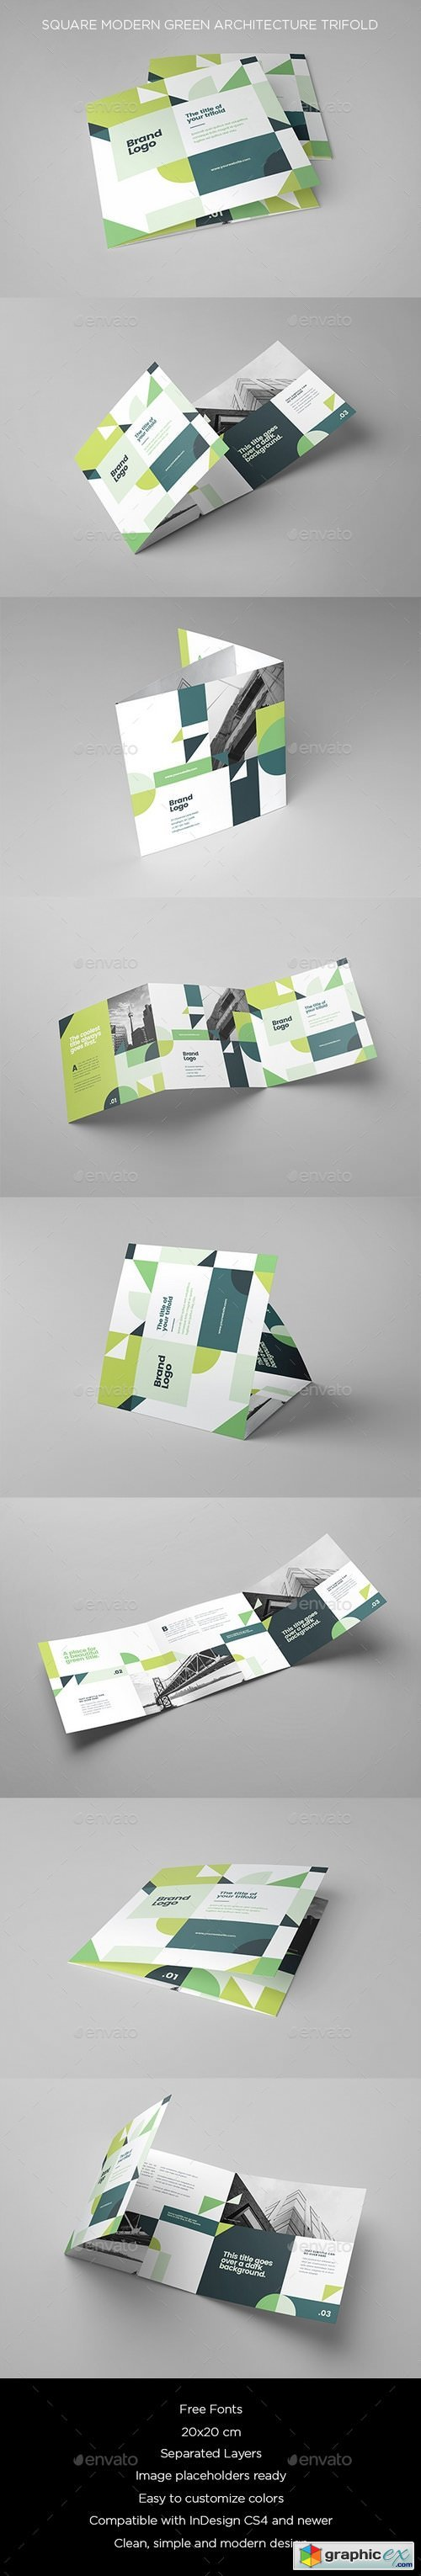 Square Modern Green Architecture Trifold